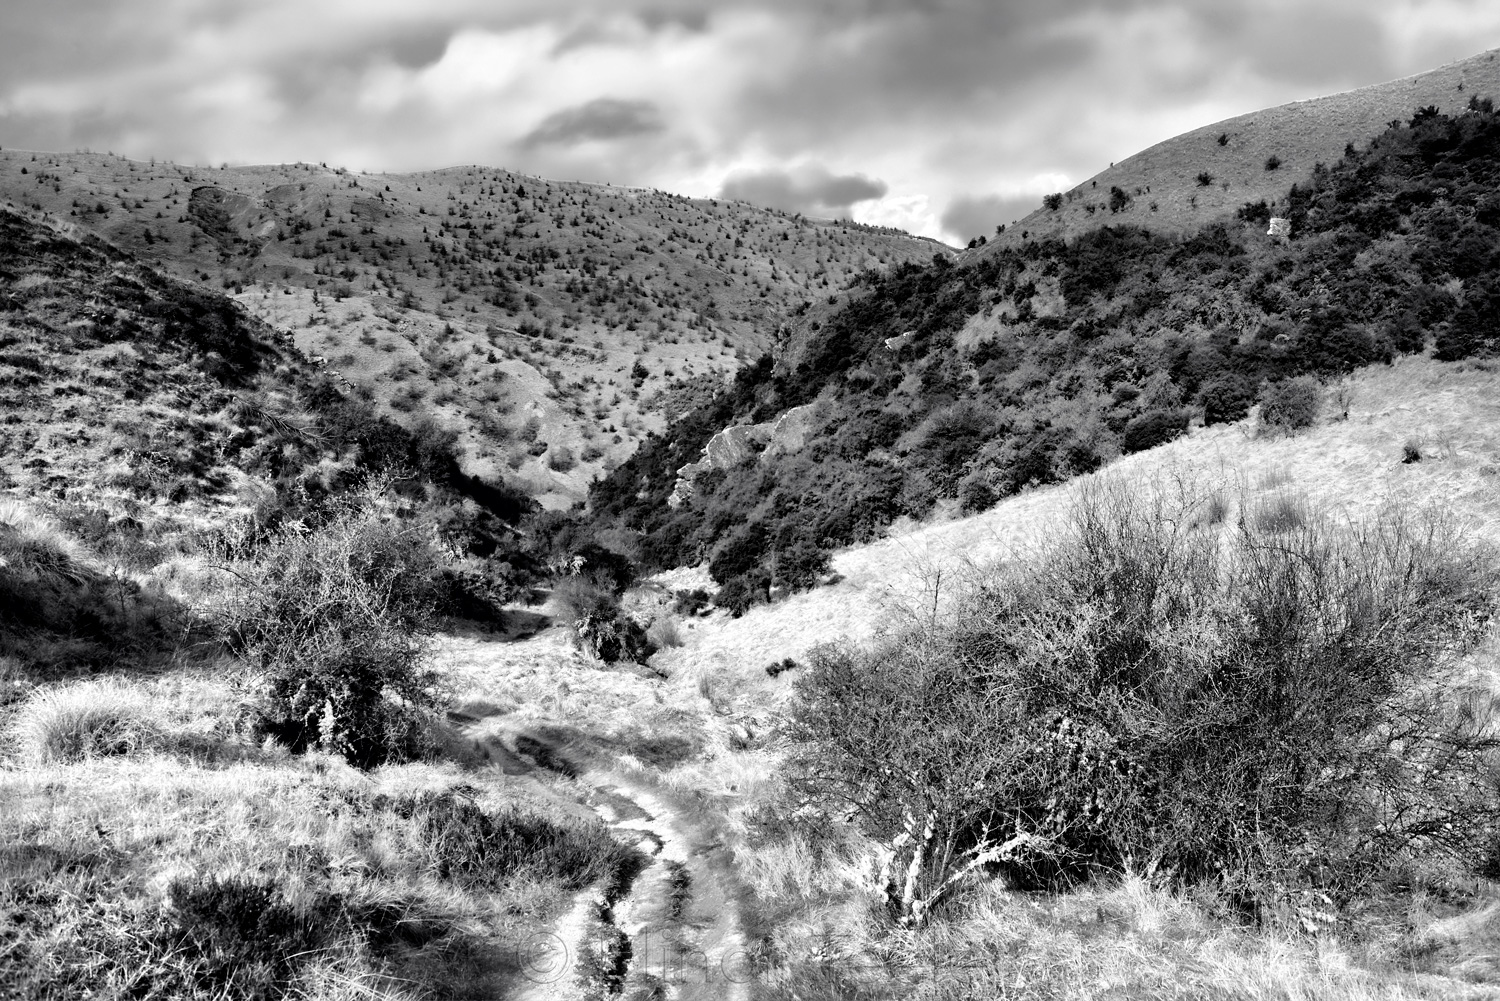 Sawpit Gully - Heading for the Arrow - Black & White